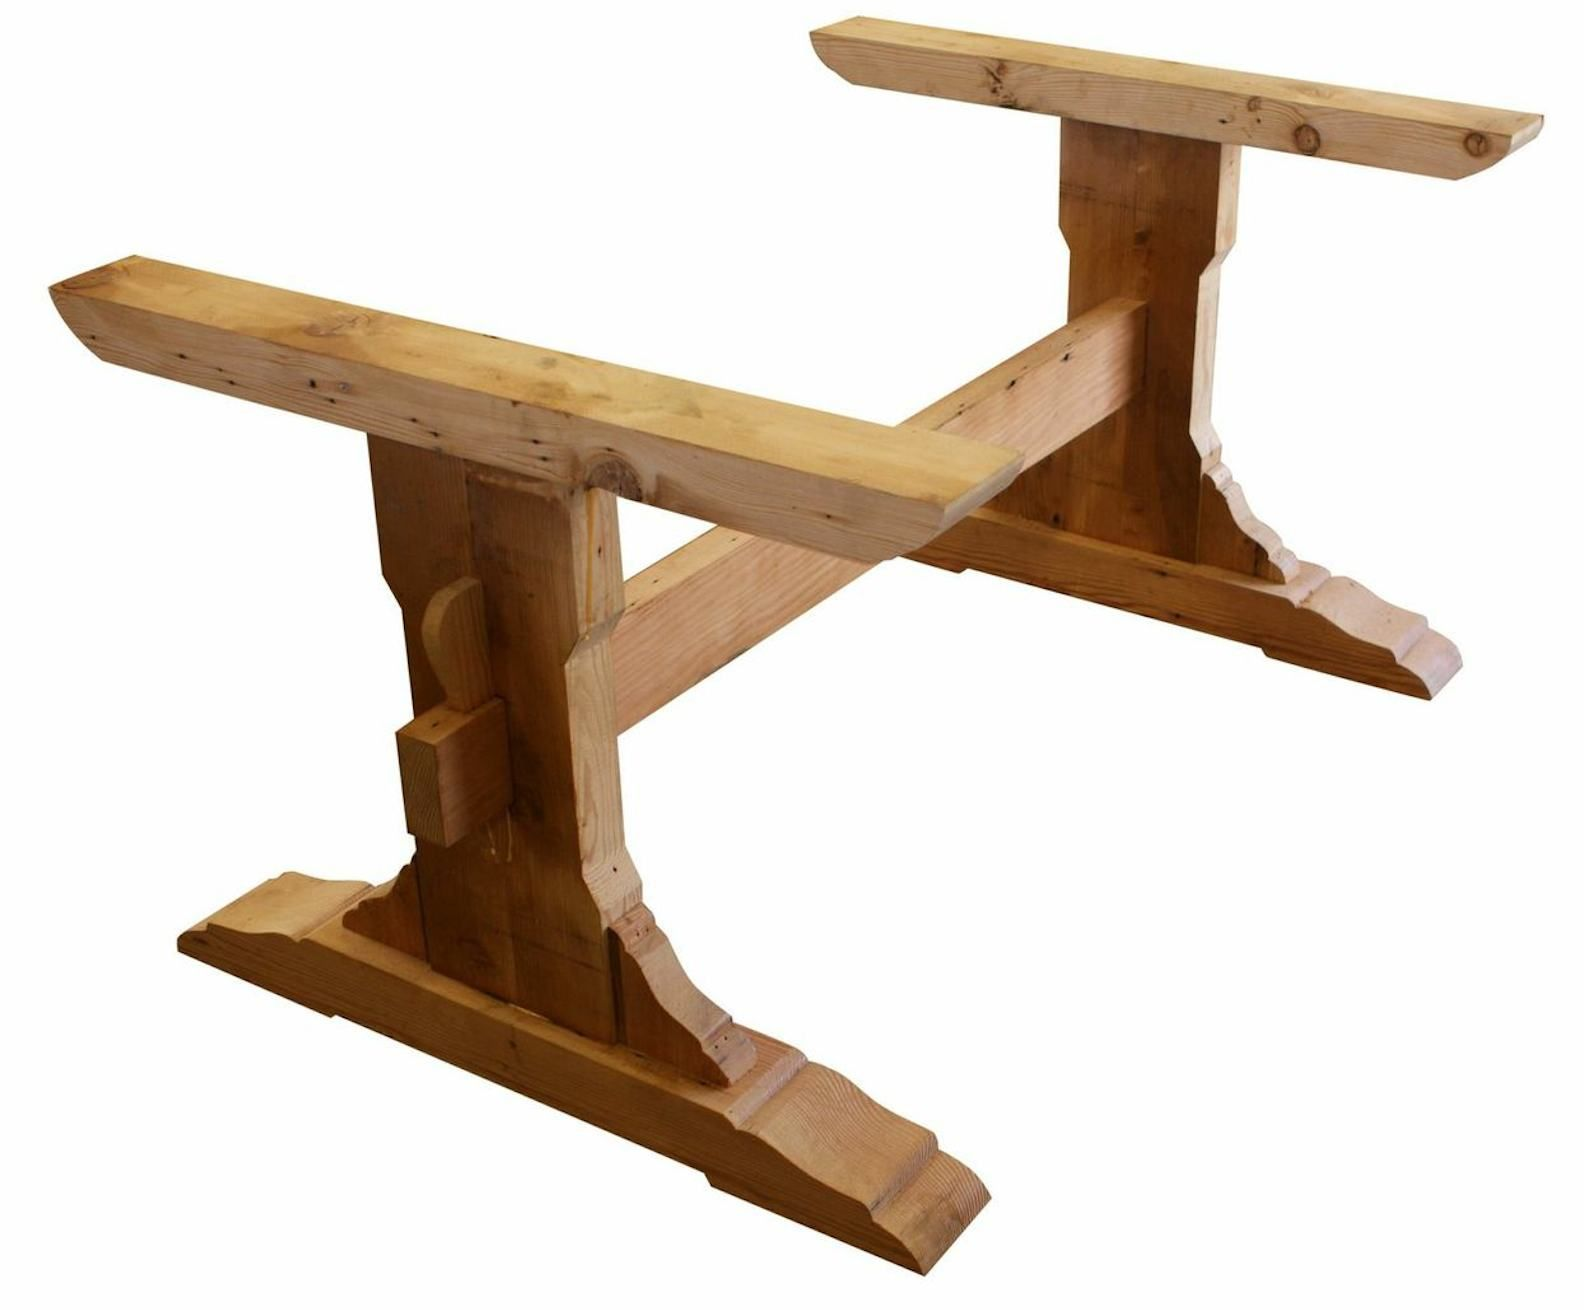 Amazing Kitchen Design:Amazing Reclaimed Wood Trestle Table Cool Tables That Seat  All About House Design Image Of Maple Furniture Building Projects Small  Wooden ... Amazing Pictures